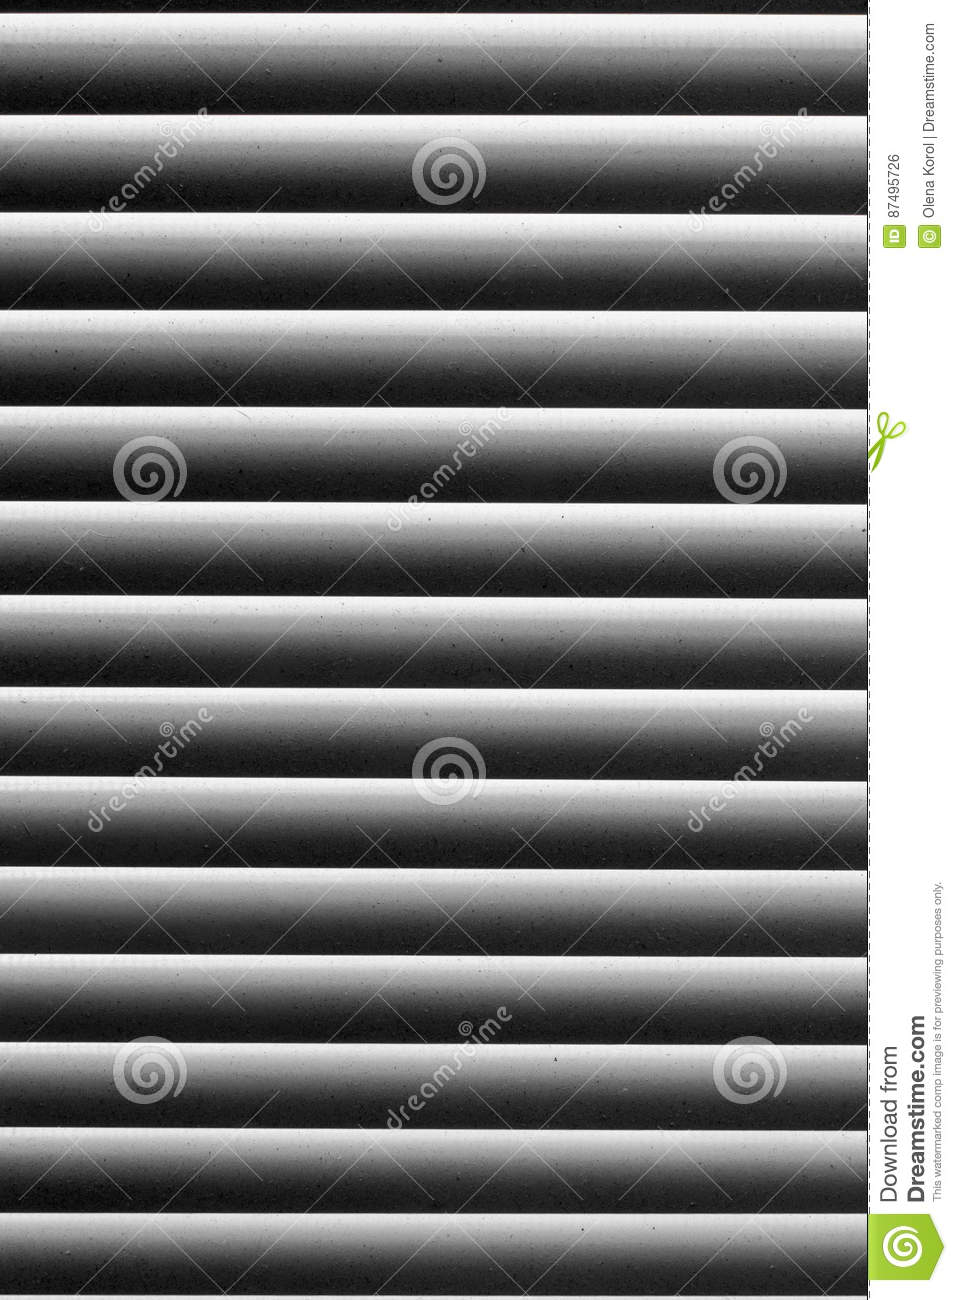 Graphic texture in black and white abstract striped pattern. Blinds on the window with the dust on the light strips